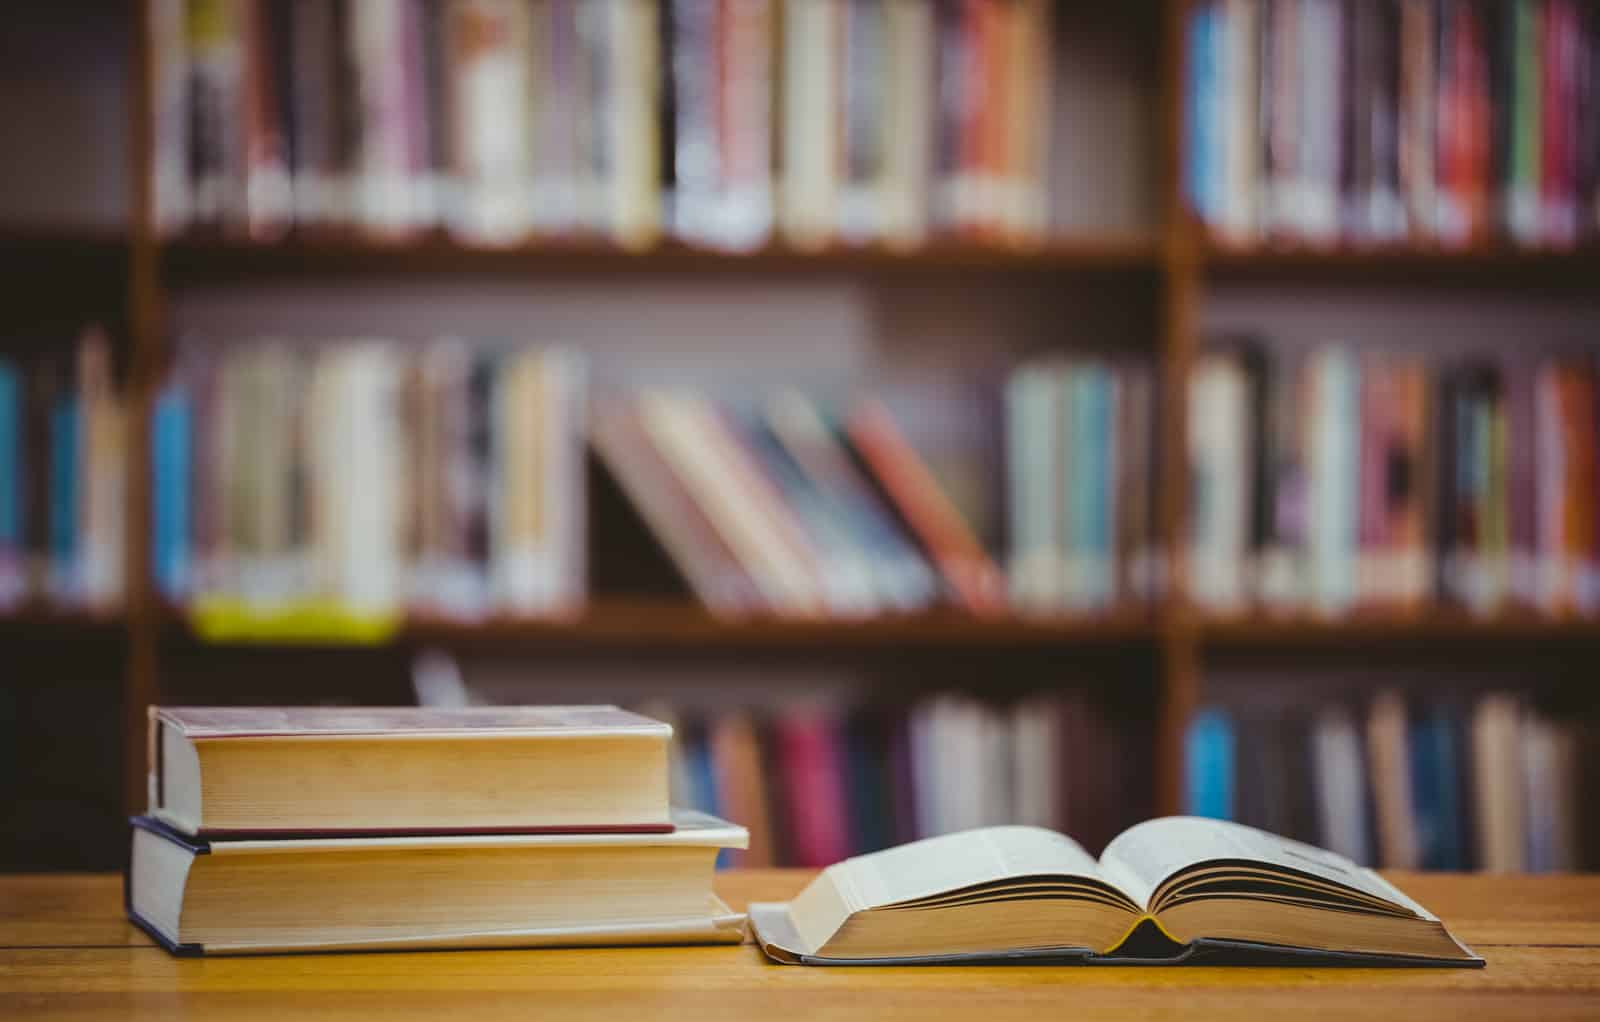 Growth Education tutoring library books